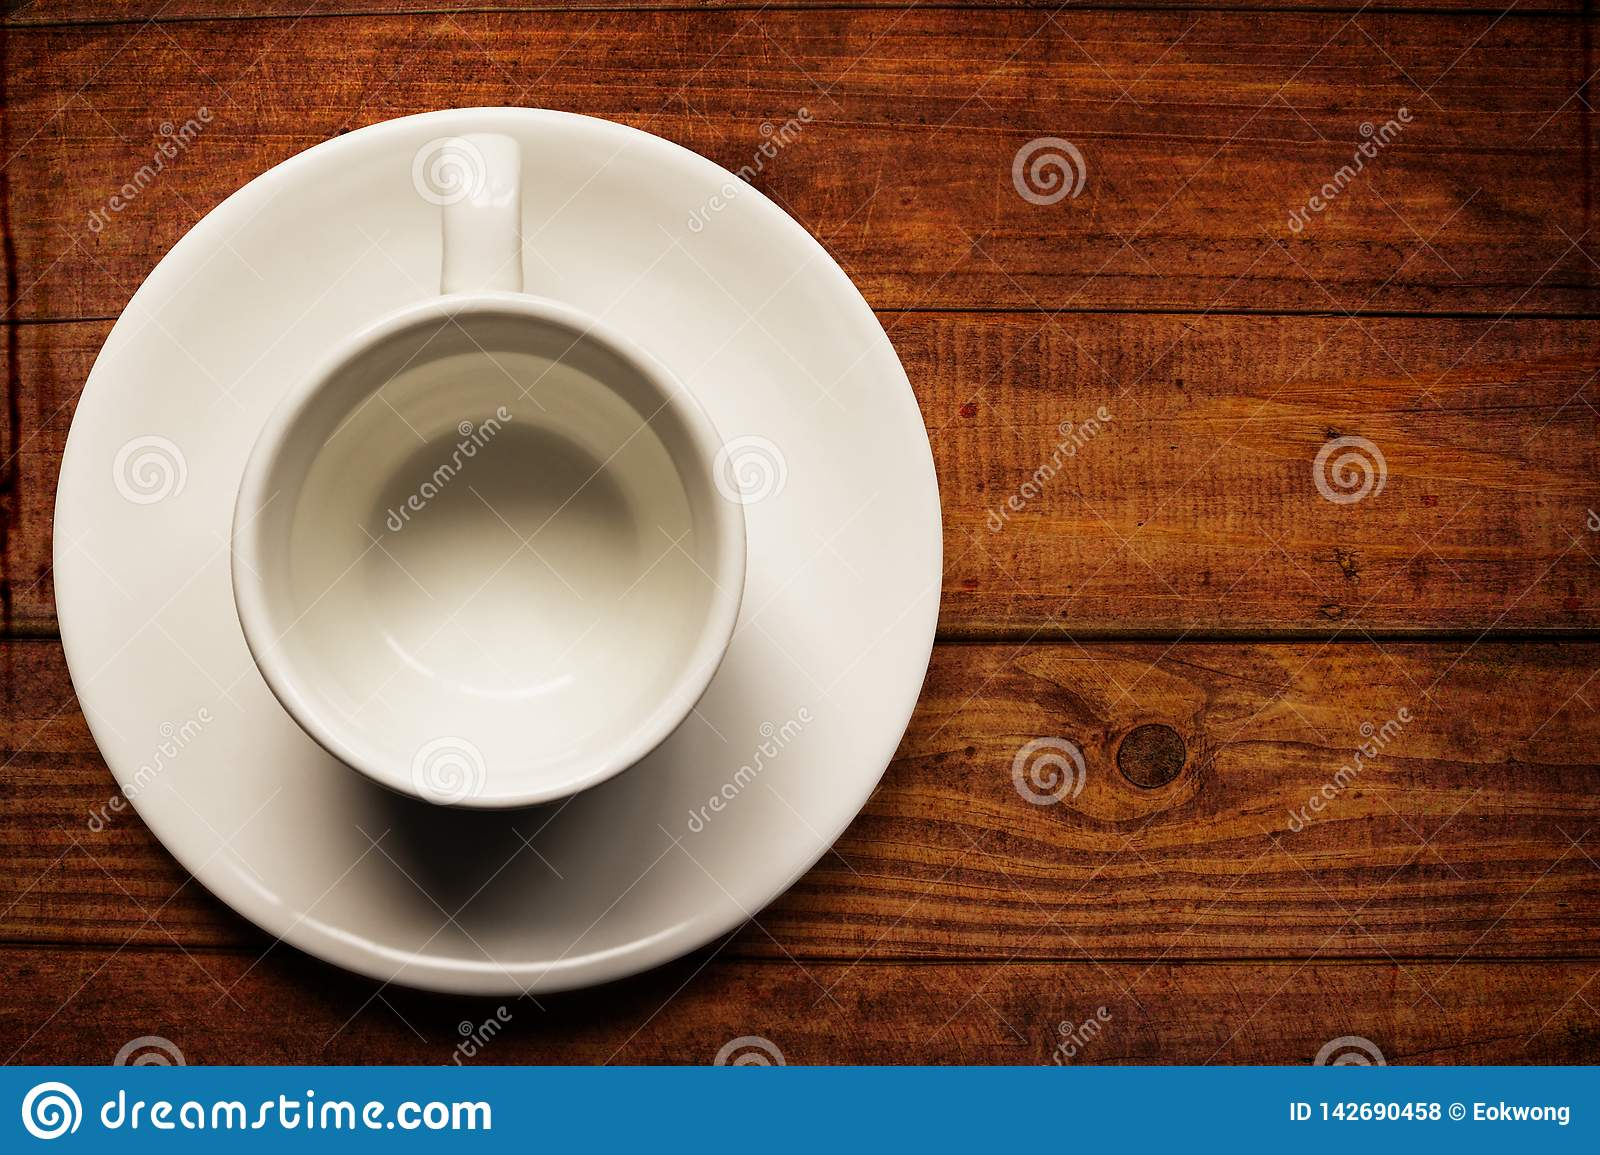 Empty white teacup and saucer on old wood texture background